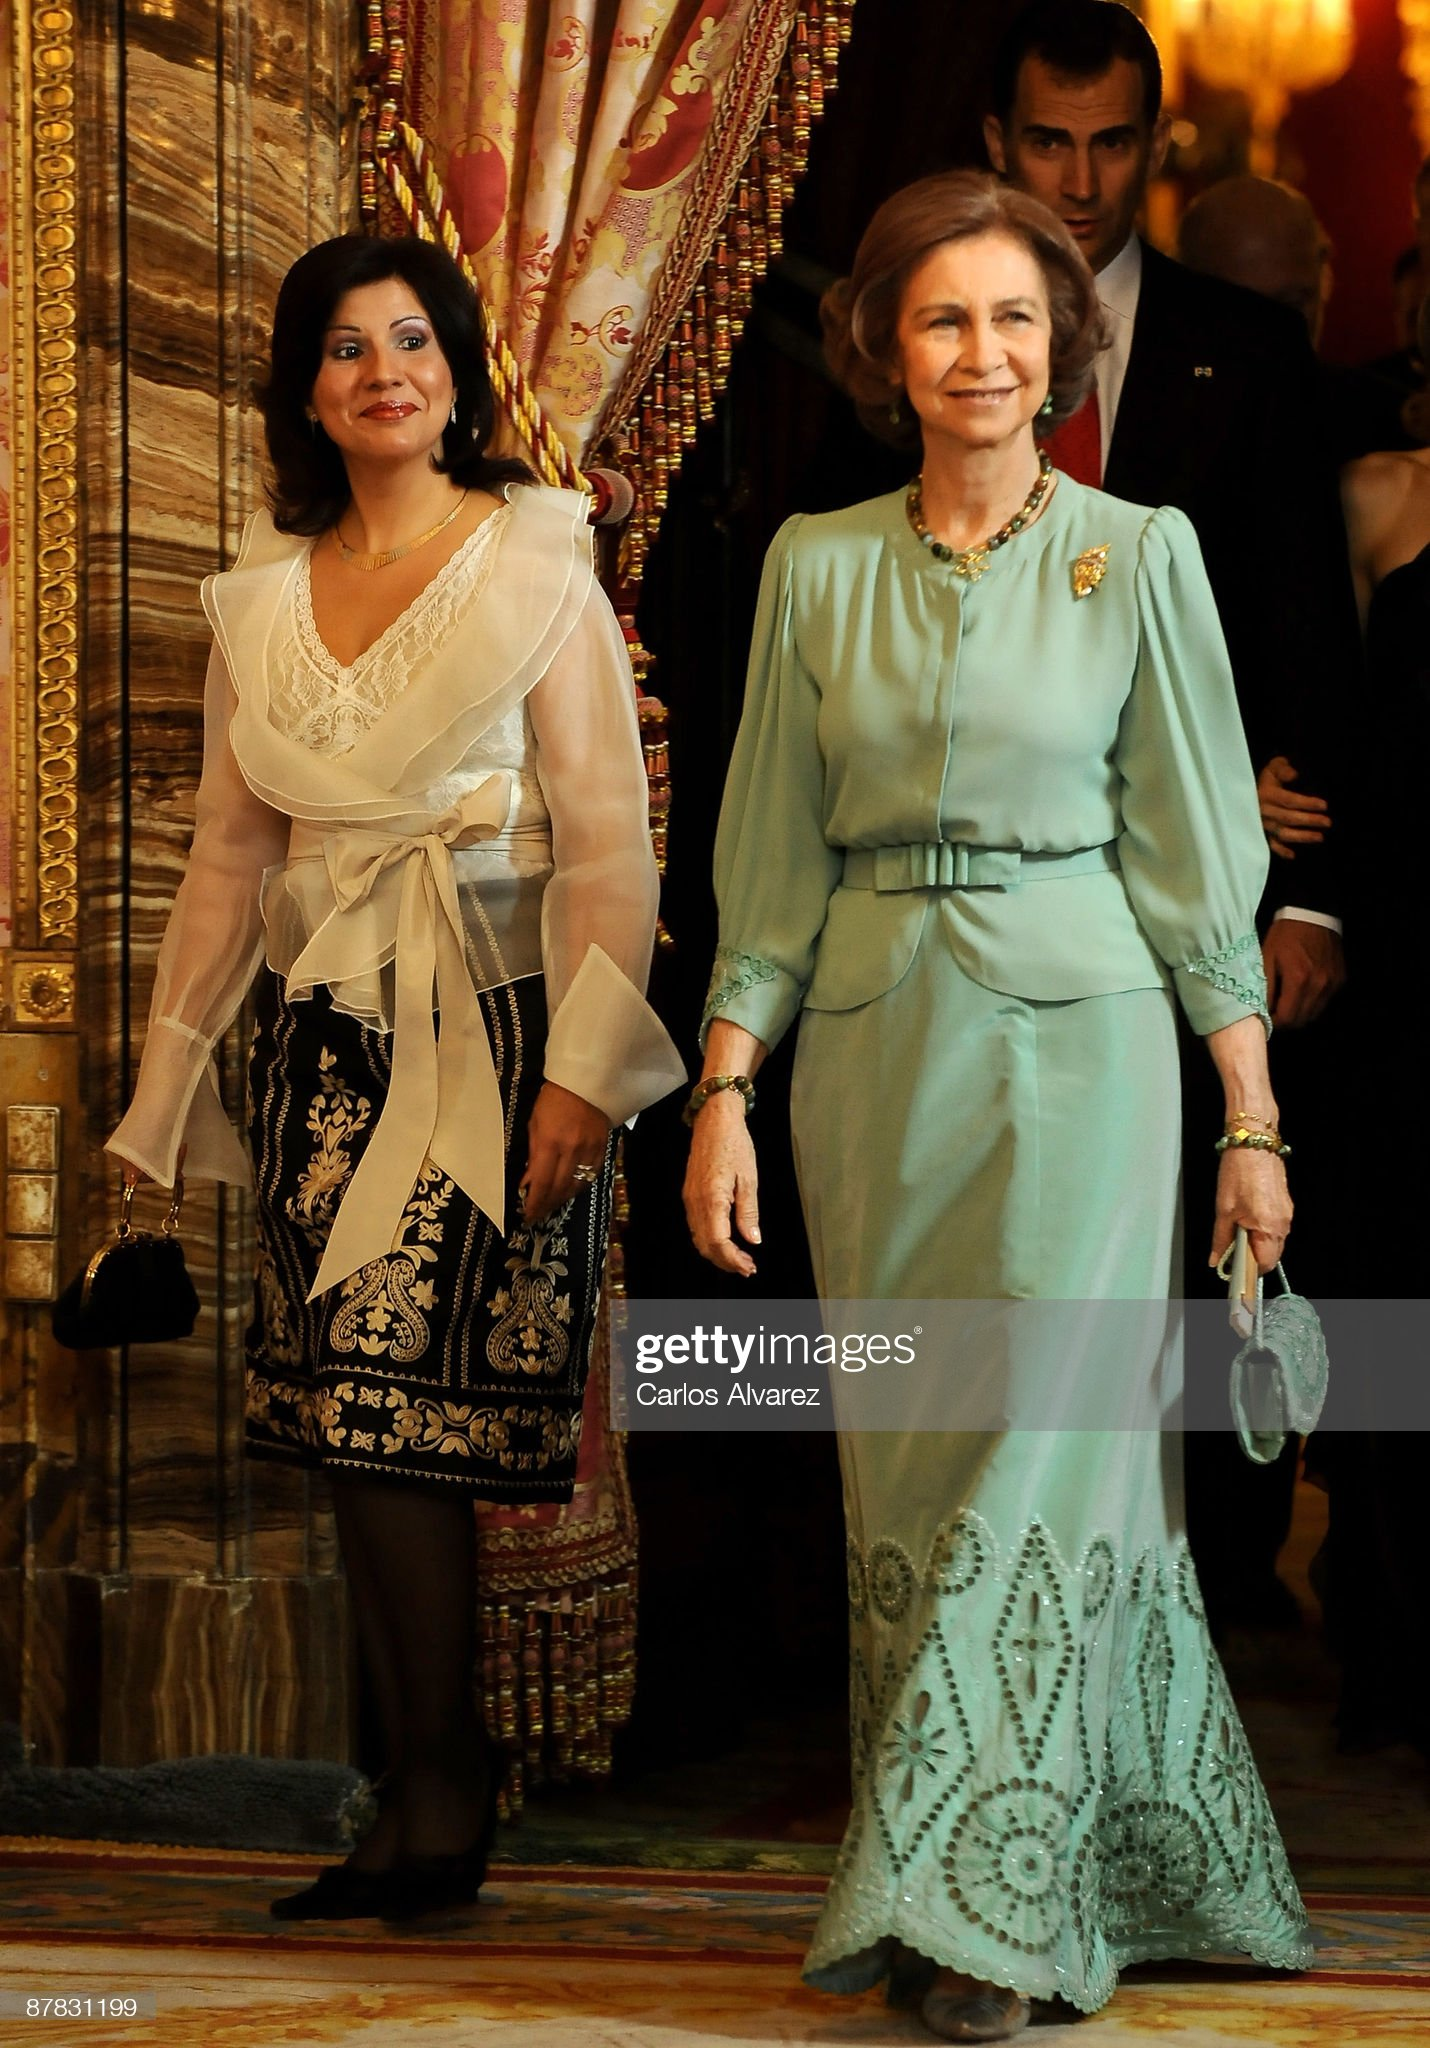 Spanish Royals Host Gala Dinner Honouring Dominican Republic President : News Photo